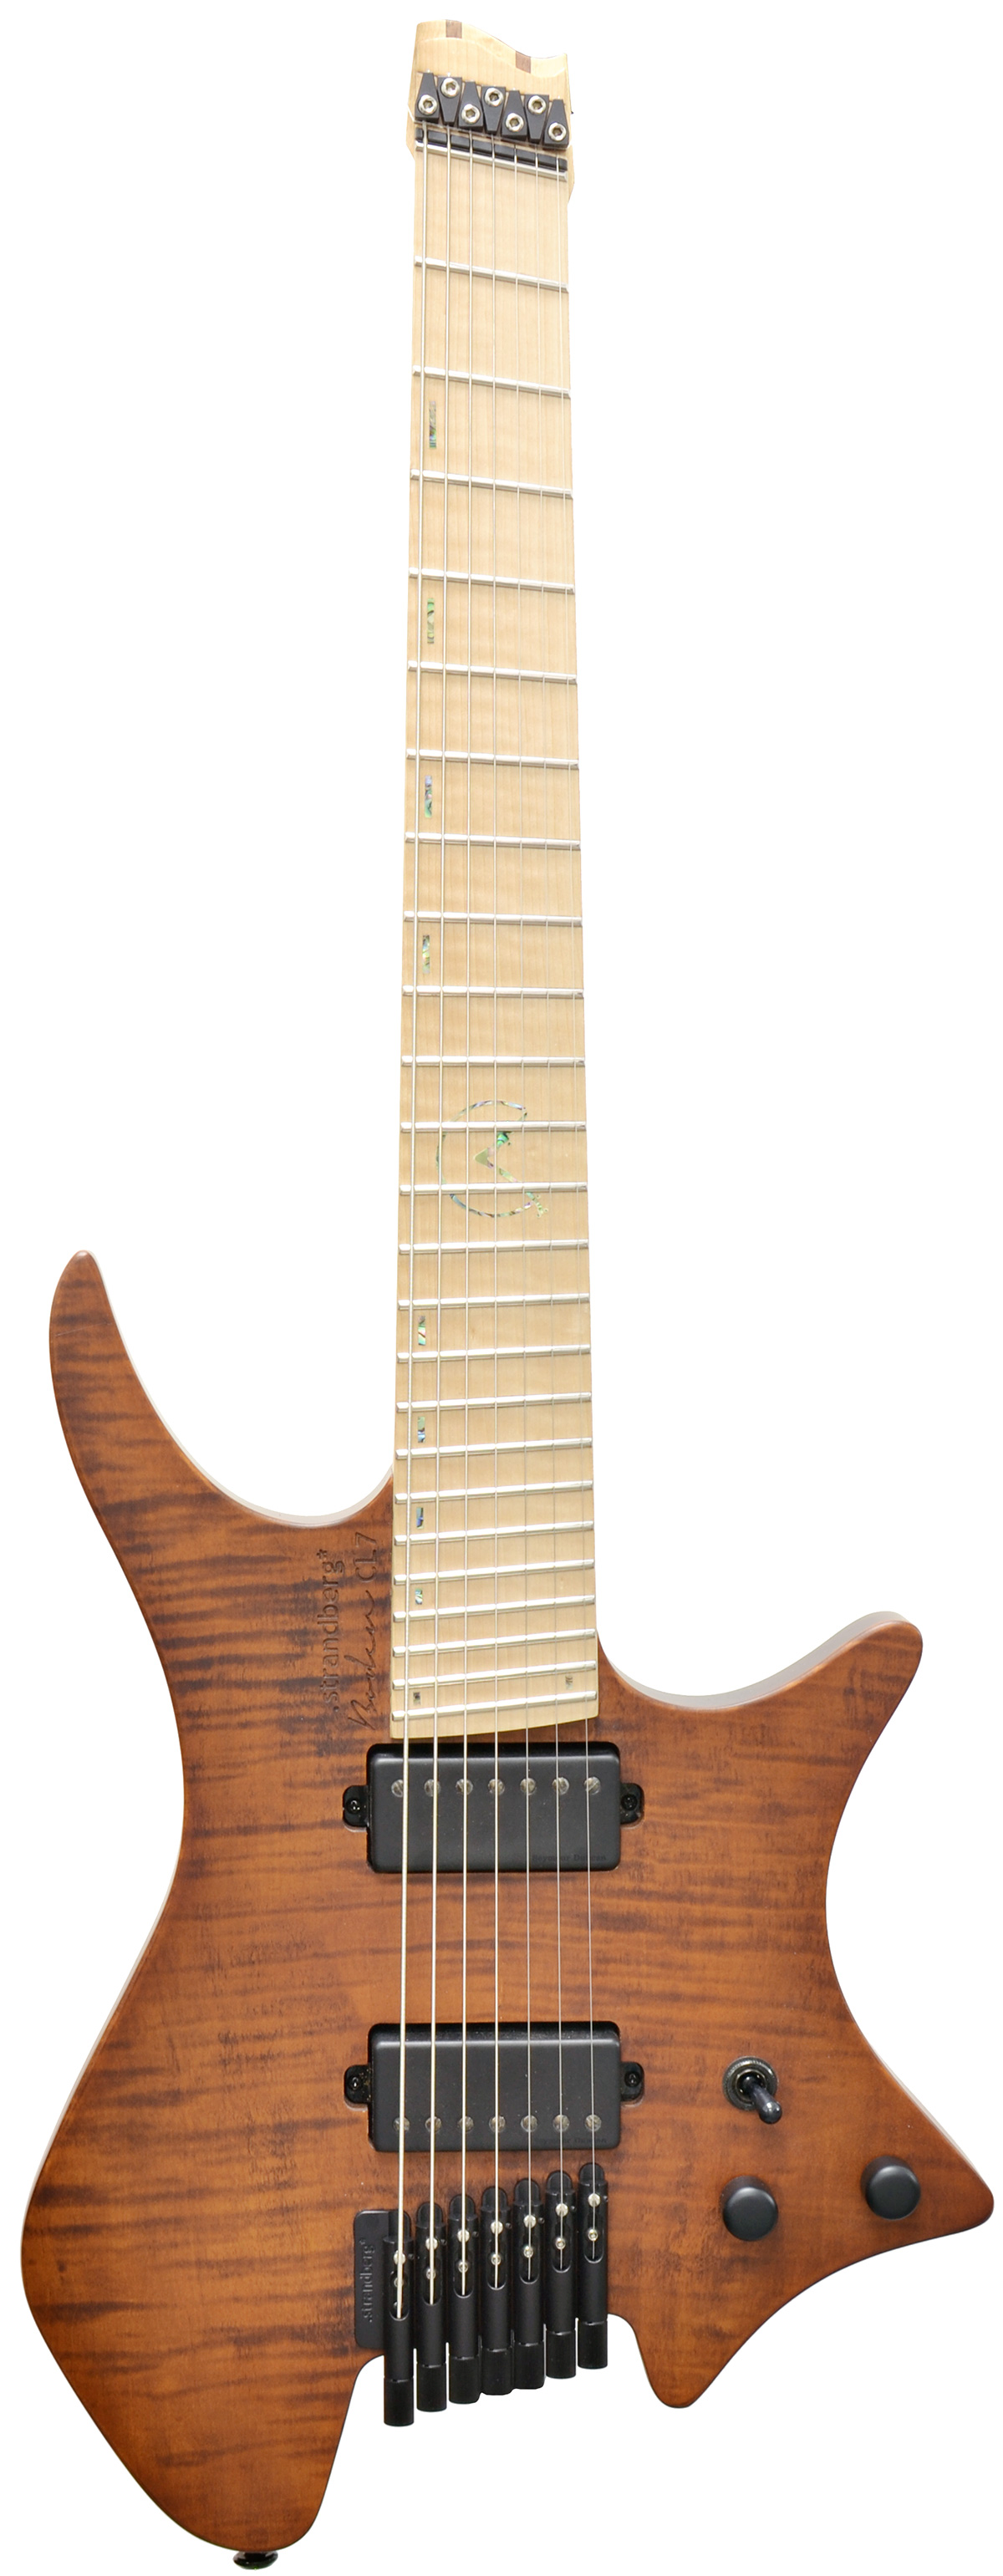 Strandberg boden cl 7 brown maple for Strandberg boden 7